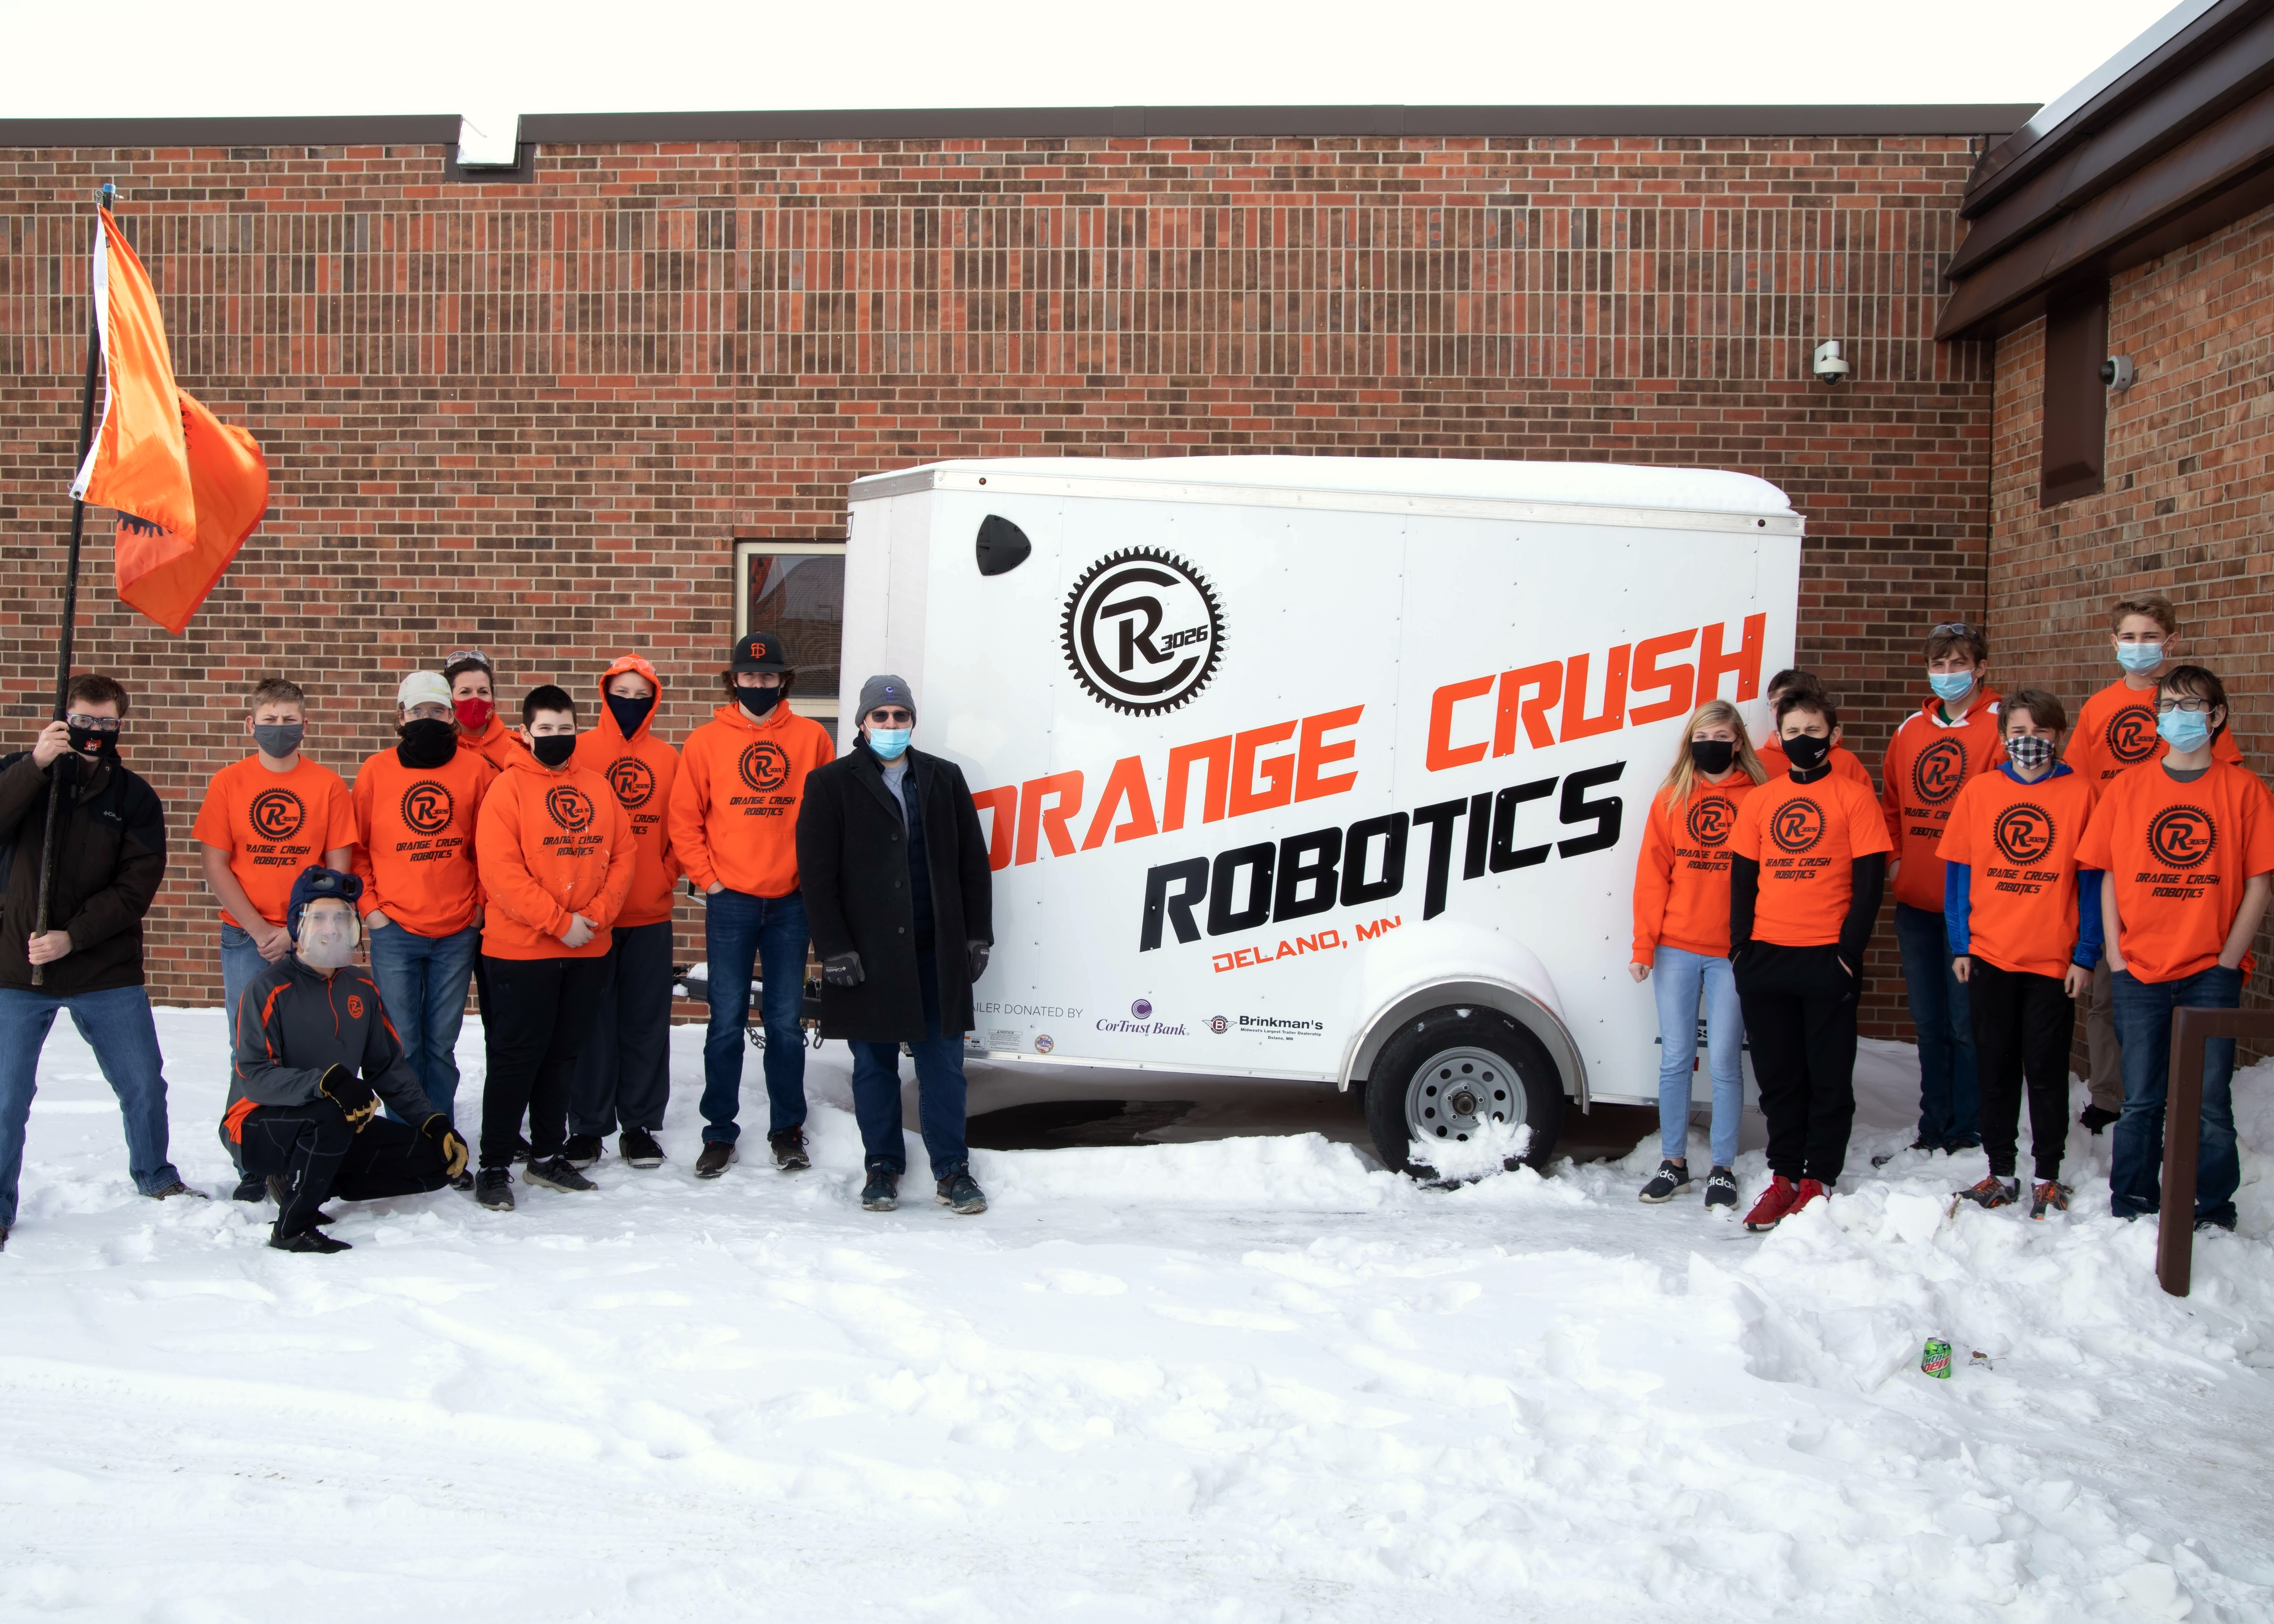 The Orange Crush Robotics team is pictured with a representative of CorTrust Bank, which donated the trailer.